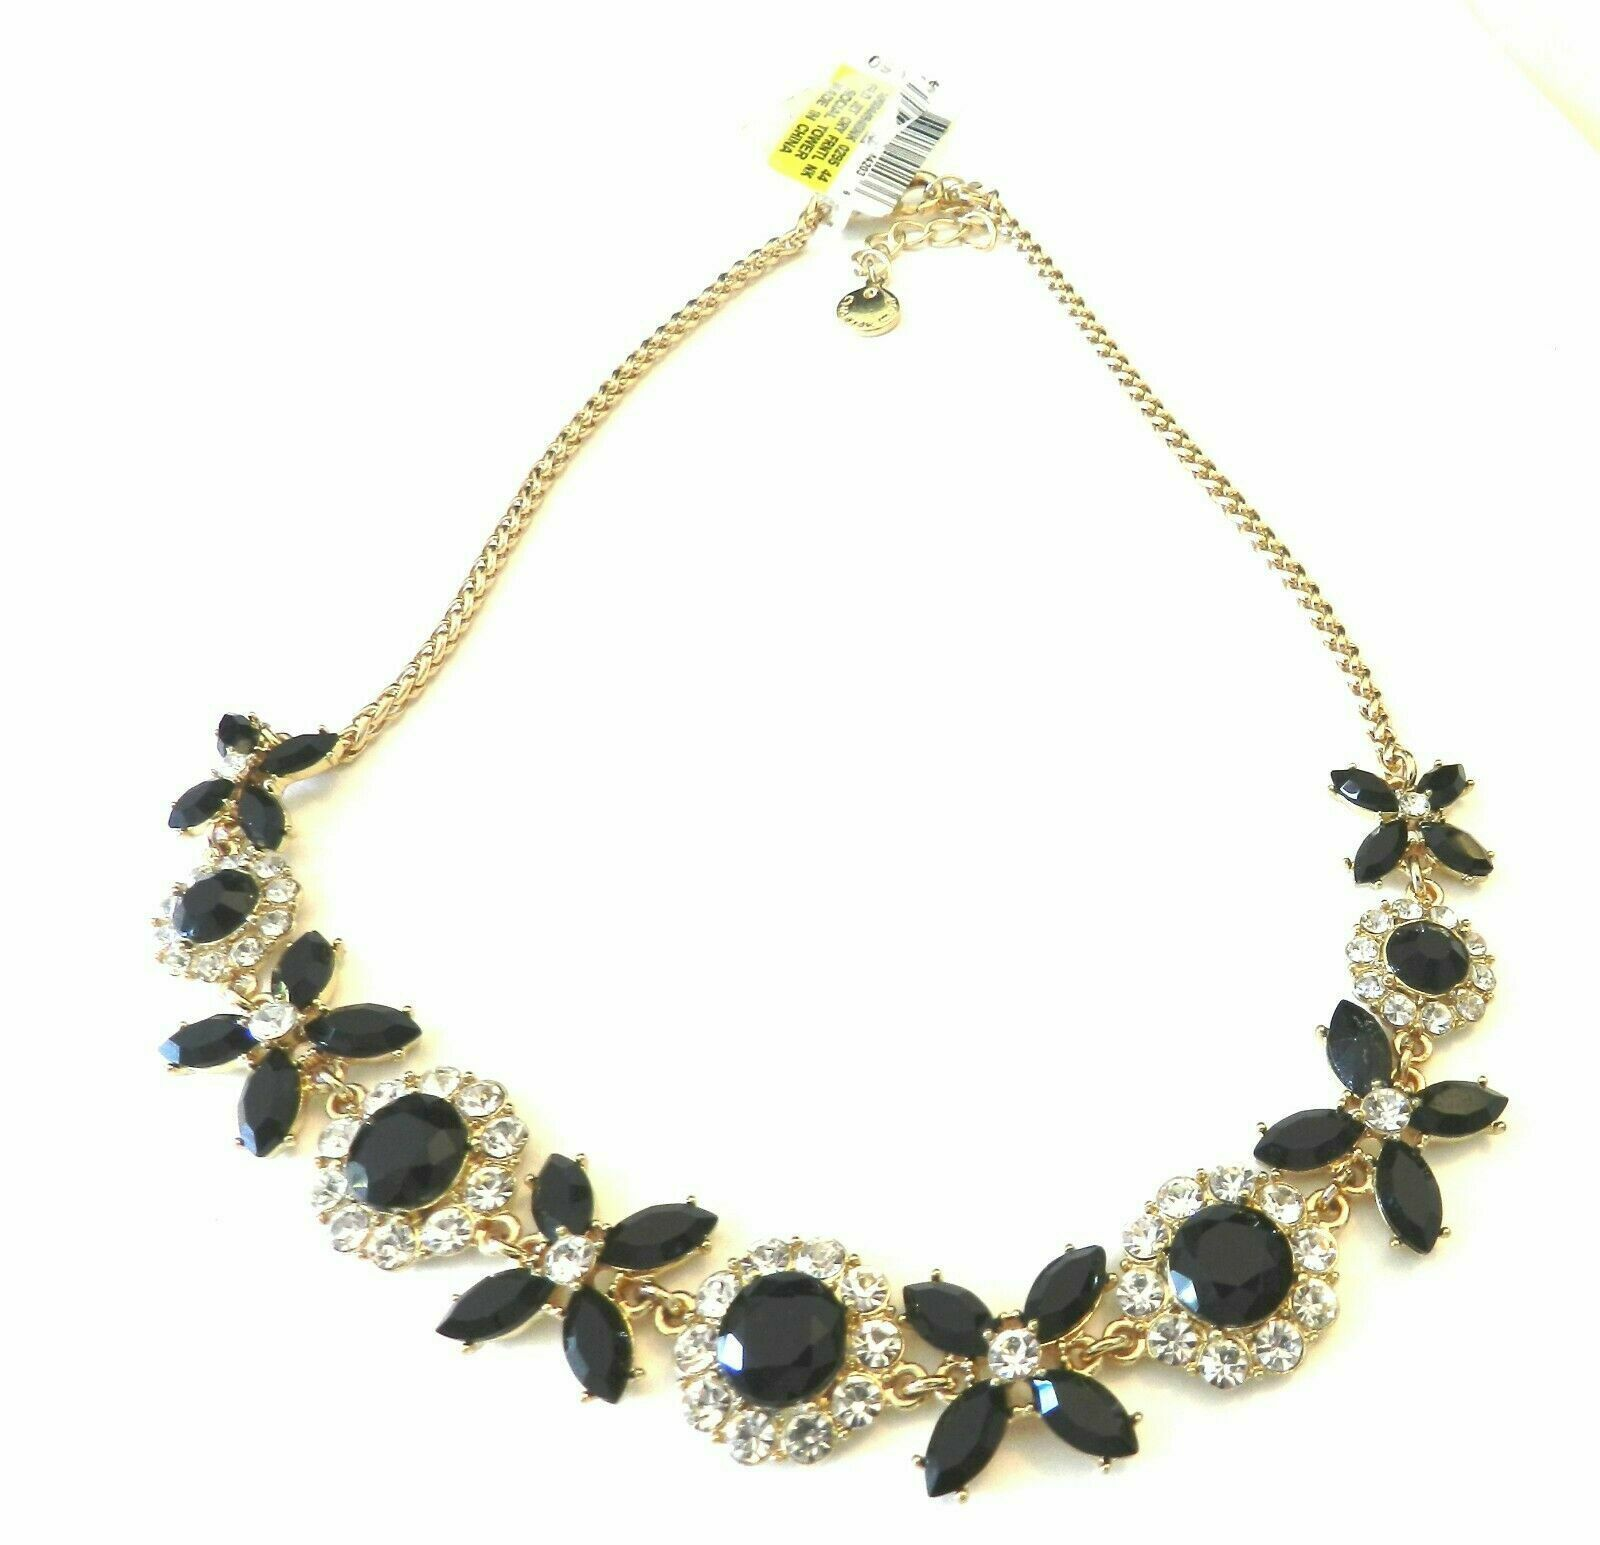 Charter Club Gold Tone Jet Black Crystal Flower Fan Frontal Necklace 17""